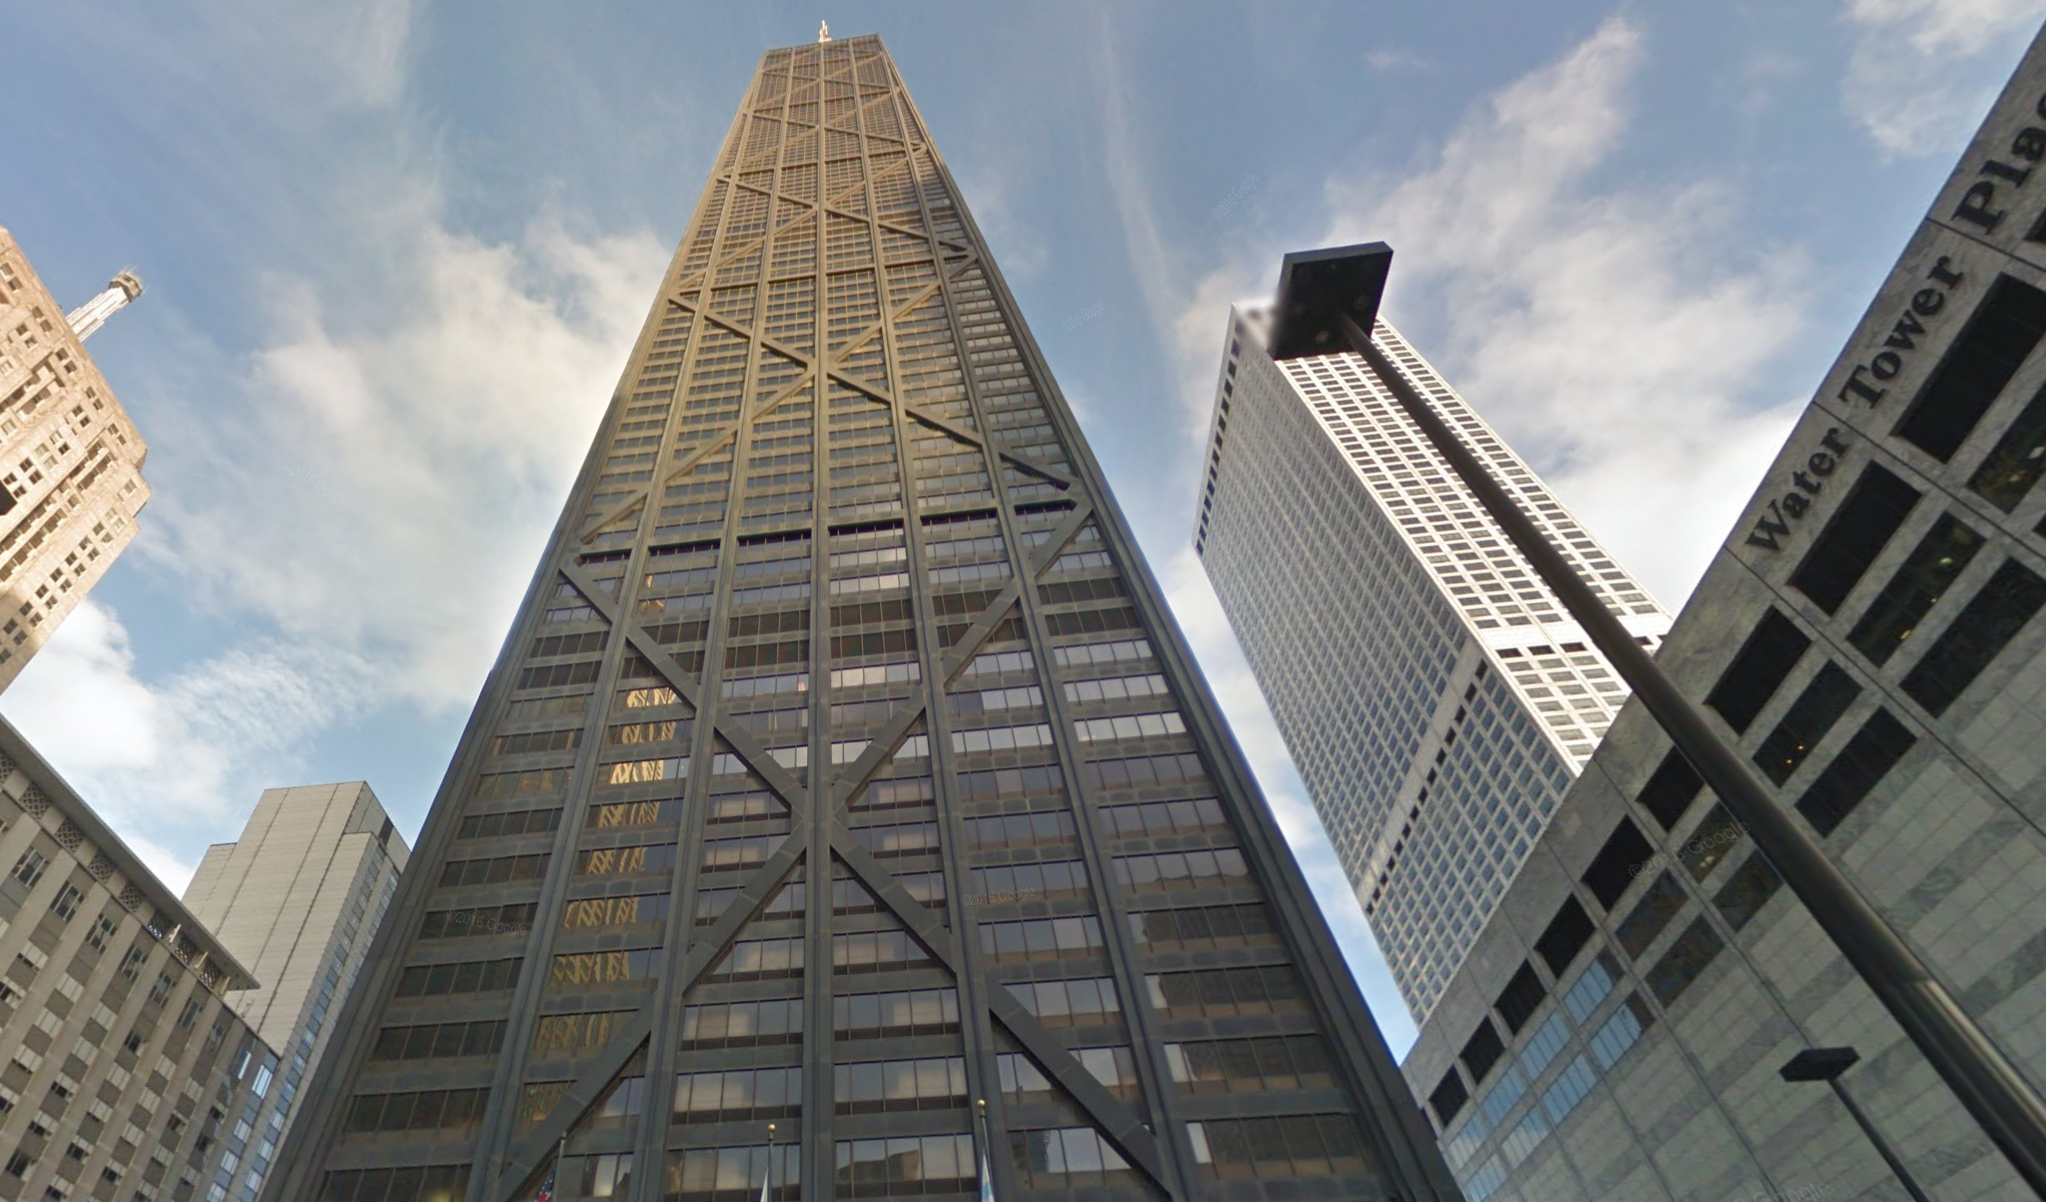 John Hancock Building in Chicago - Foulkes Vision